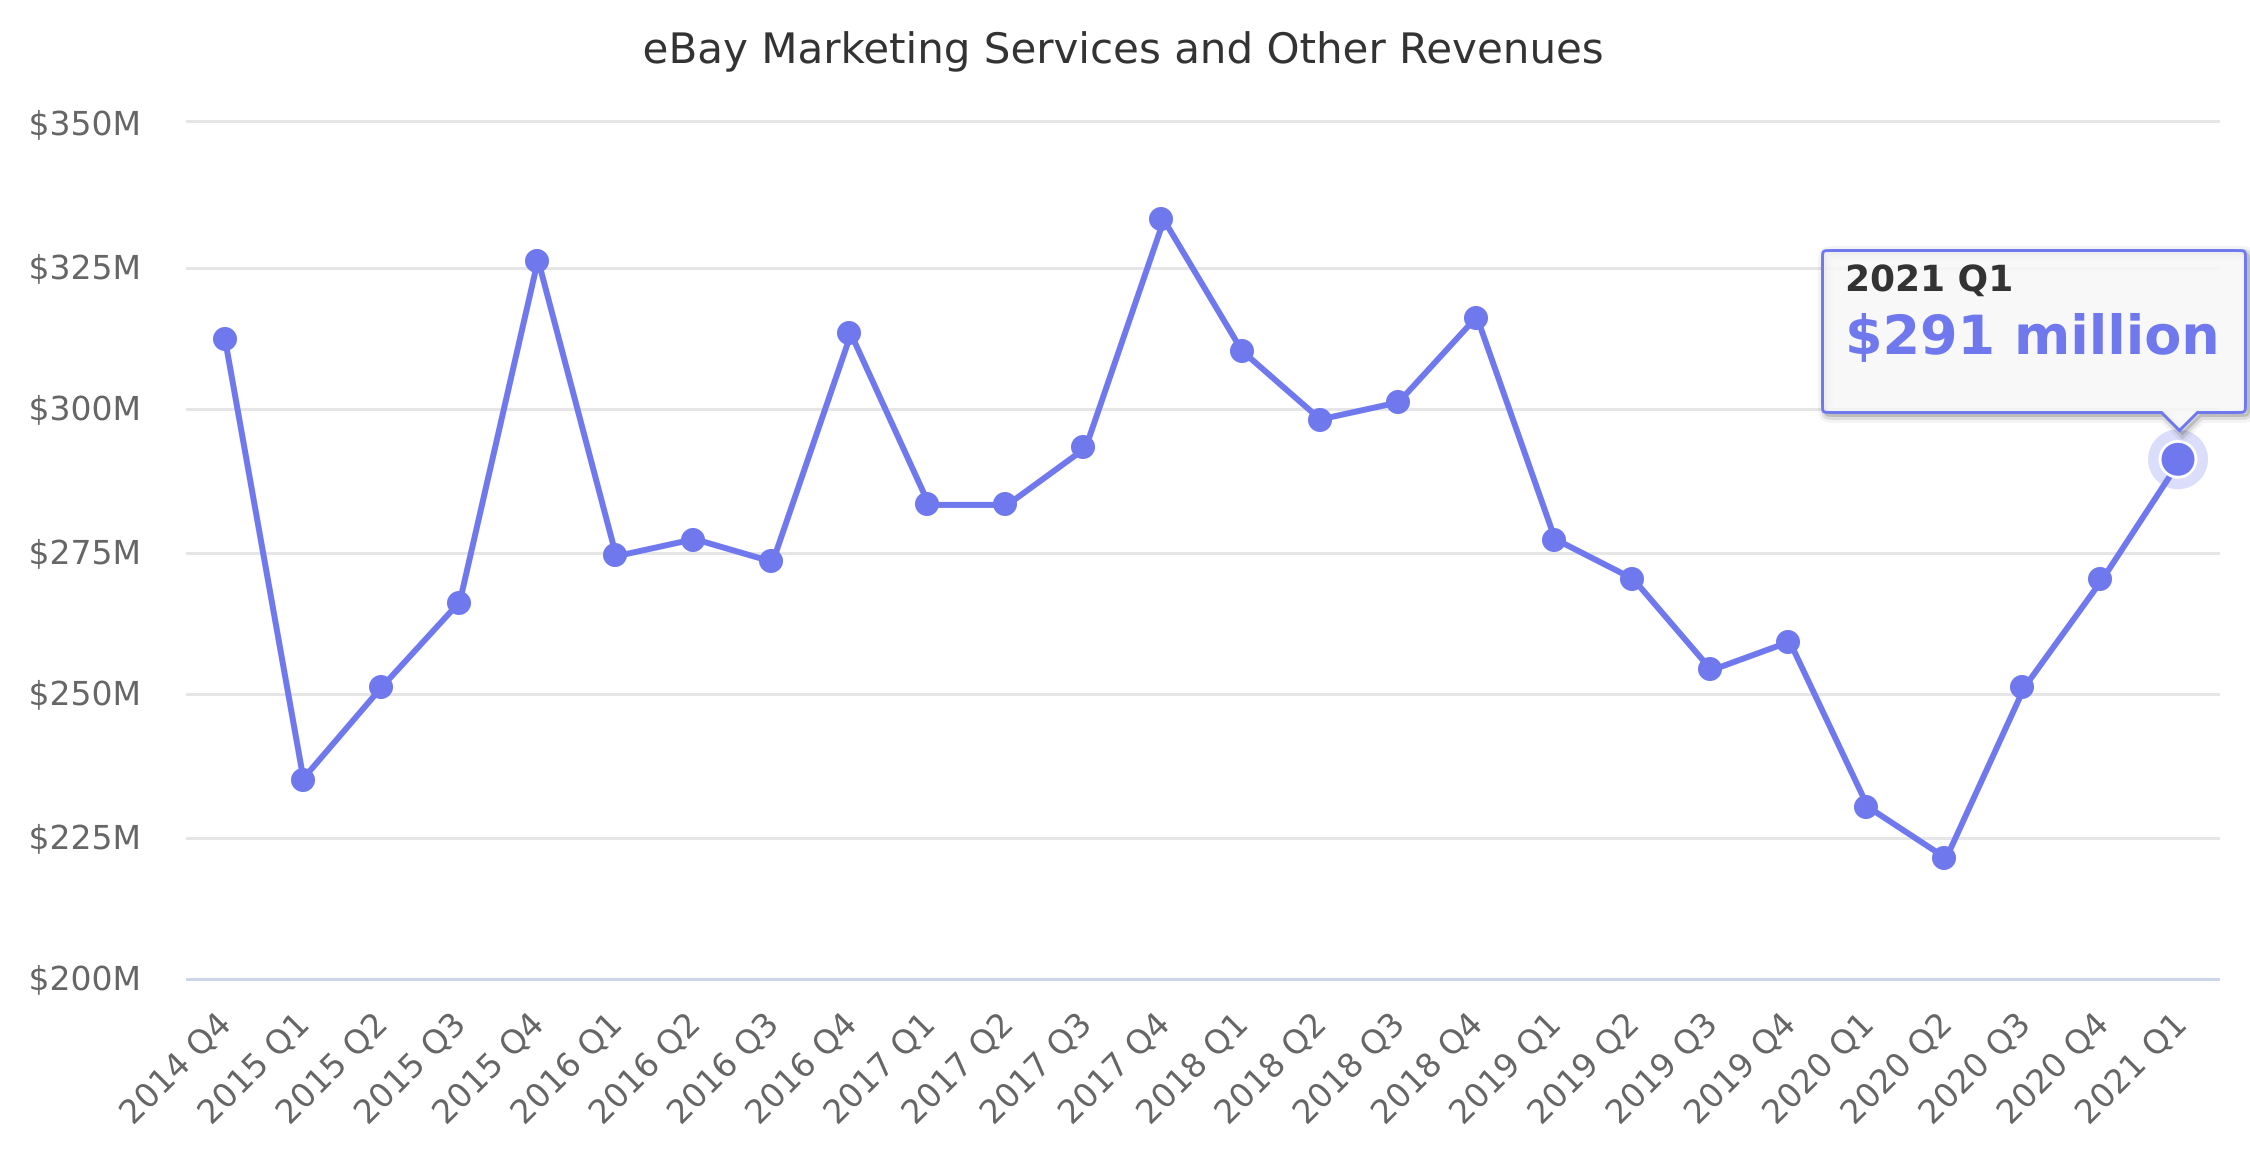 eBay Marketing Services and Other Revenues